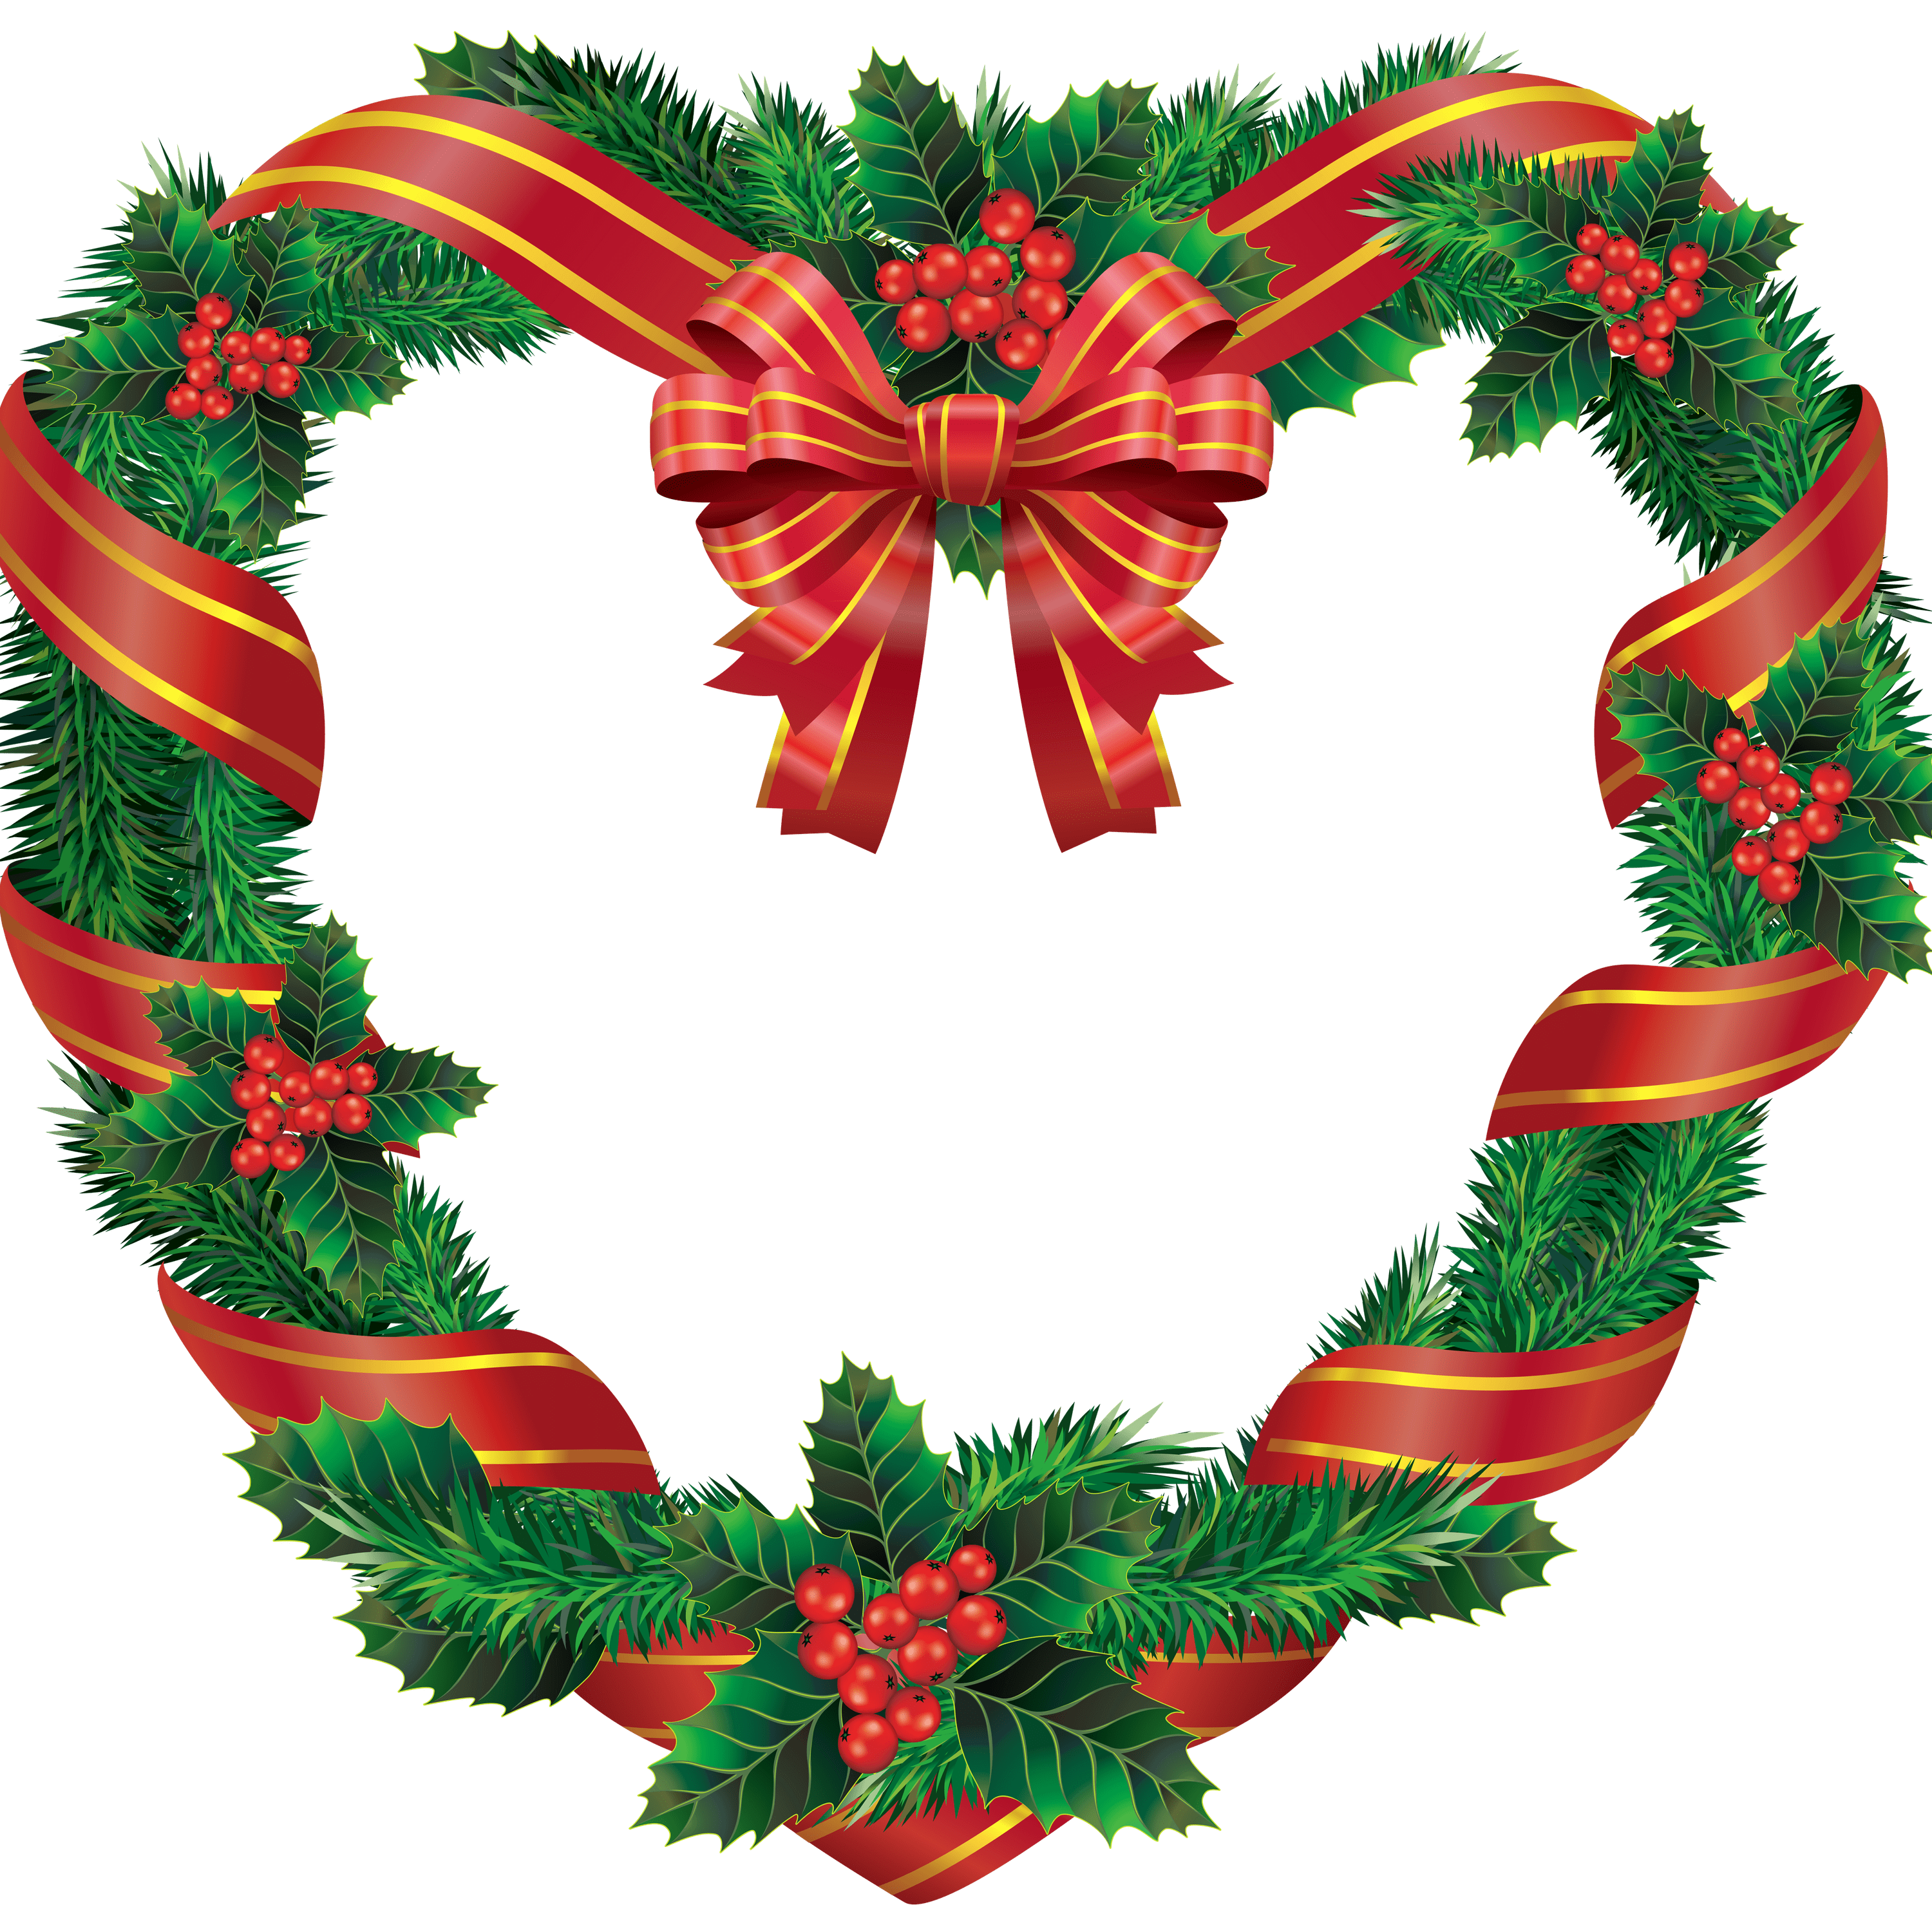 3000x3000 Heart Christmas Wreath Transparent Png